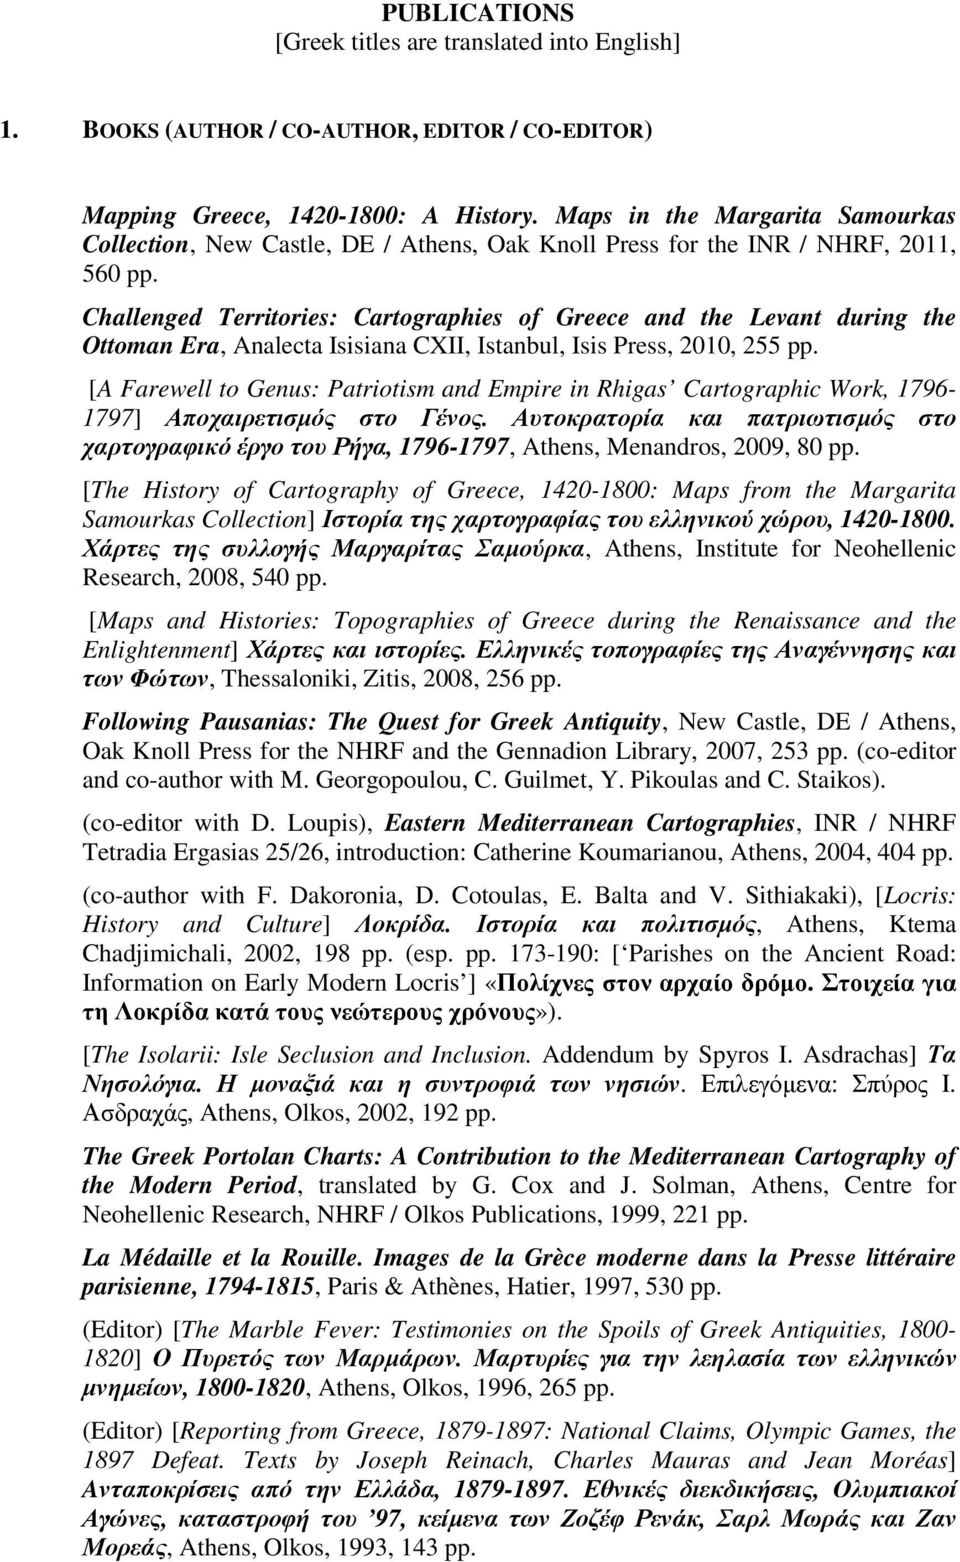 Challenged Territories: Cartographies of Greece and the Levant during the Ottoman Era, Analecta Isisiana CXII, Istanbul, Isis Press, 2010, 255 pp.